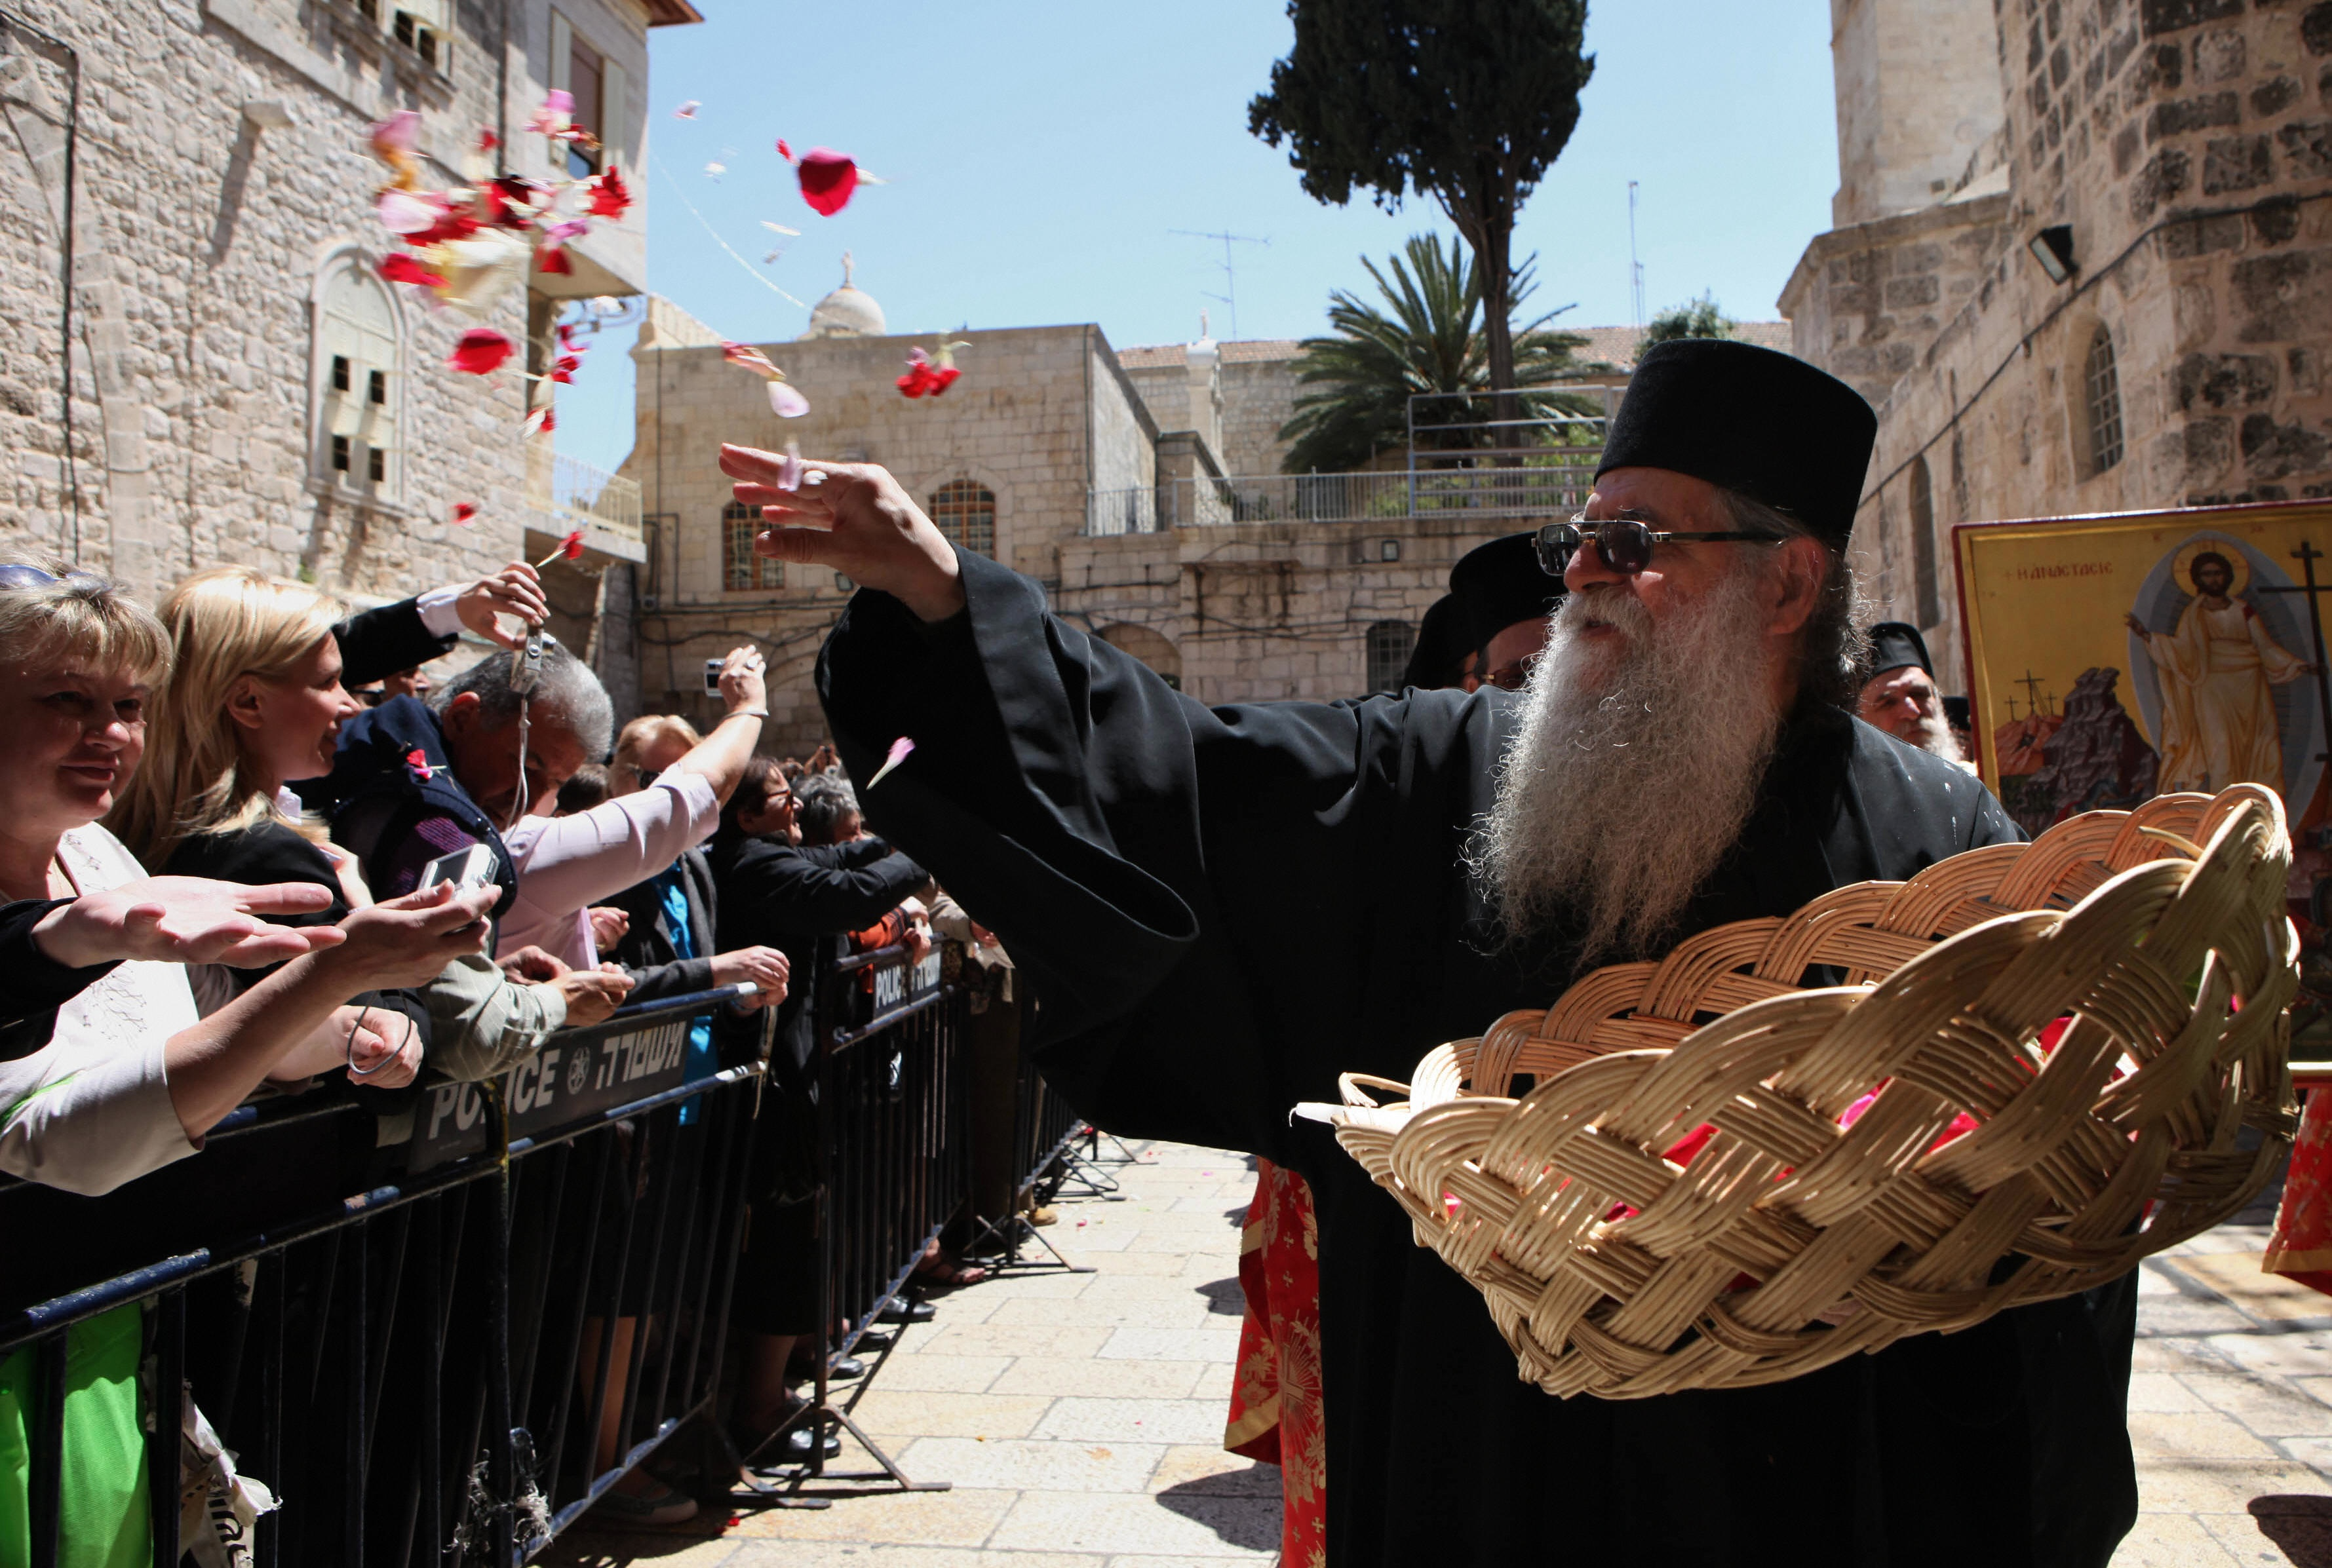 GALI TIBBON/AFP/Getty Images. A Greek Orthodox priest throws rose petals at pilgrims in front of the church of the Holy Sepulchre during the Easter Sunday procession in Jerusalem's Old City on April 19, 2009.